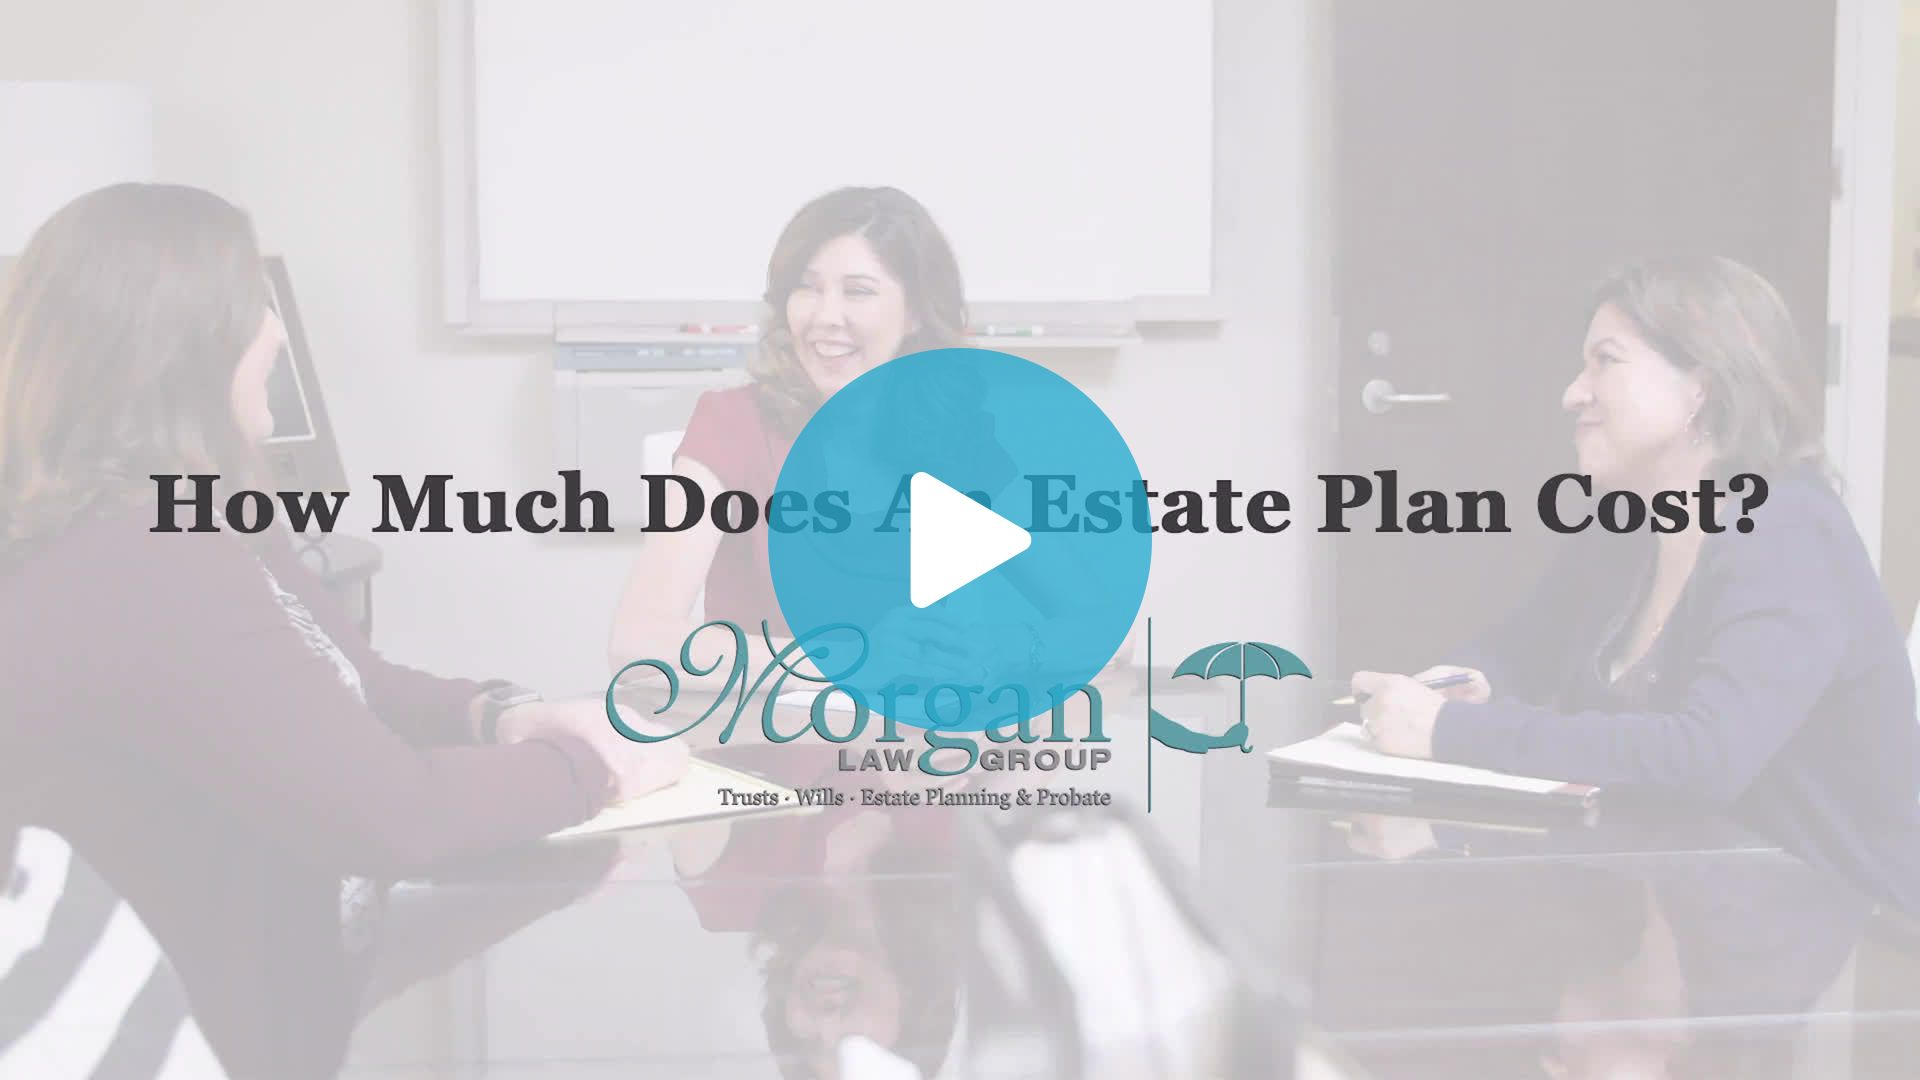 14.-How-much-does-an-estate-plan-cost